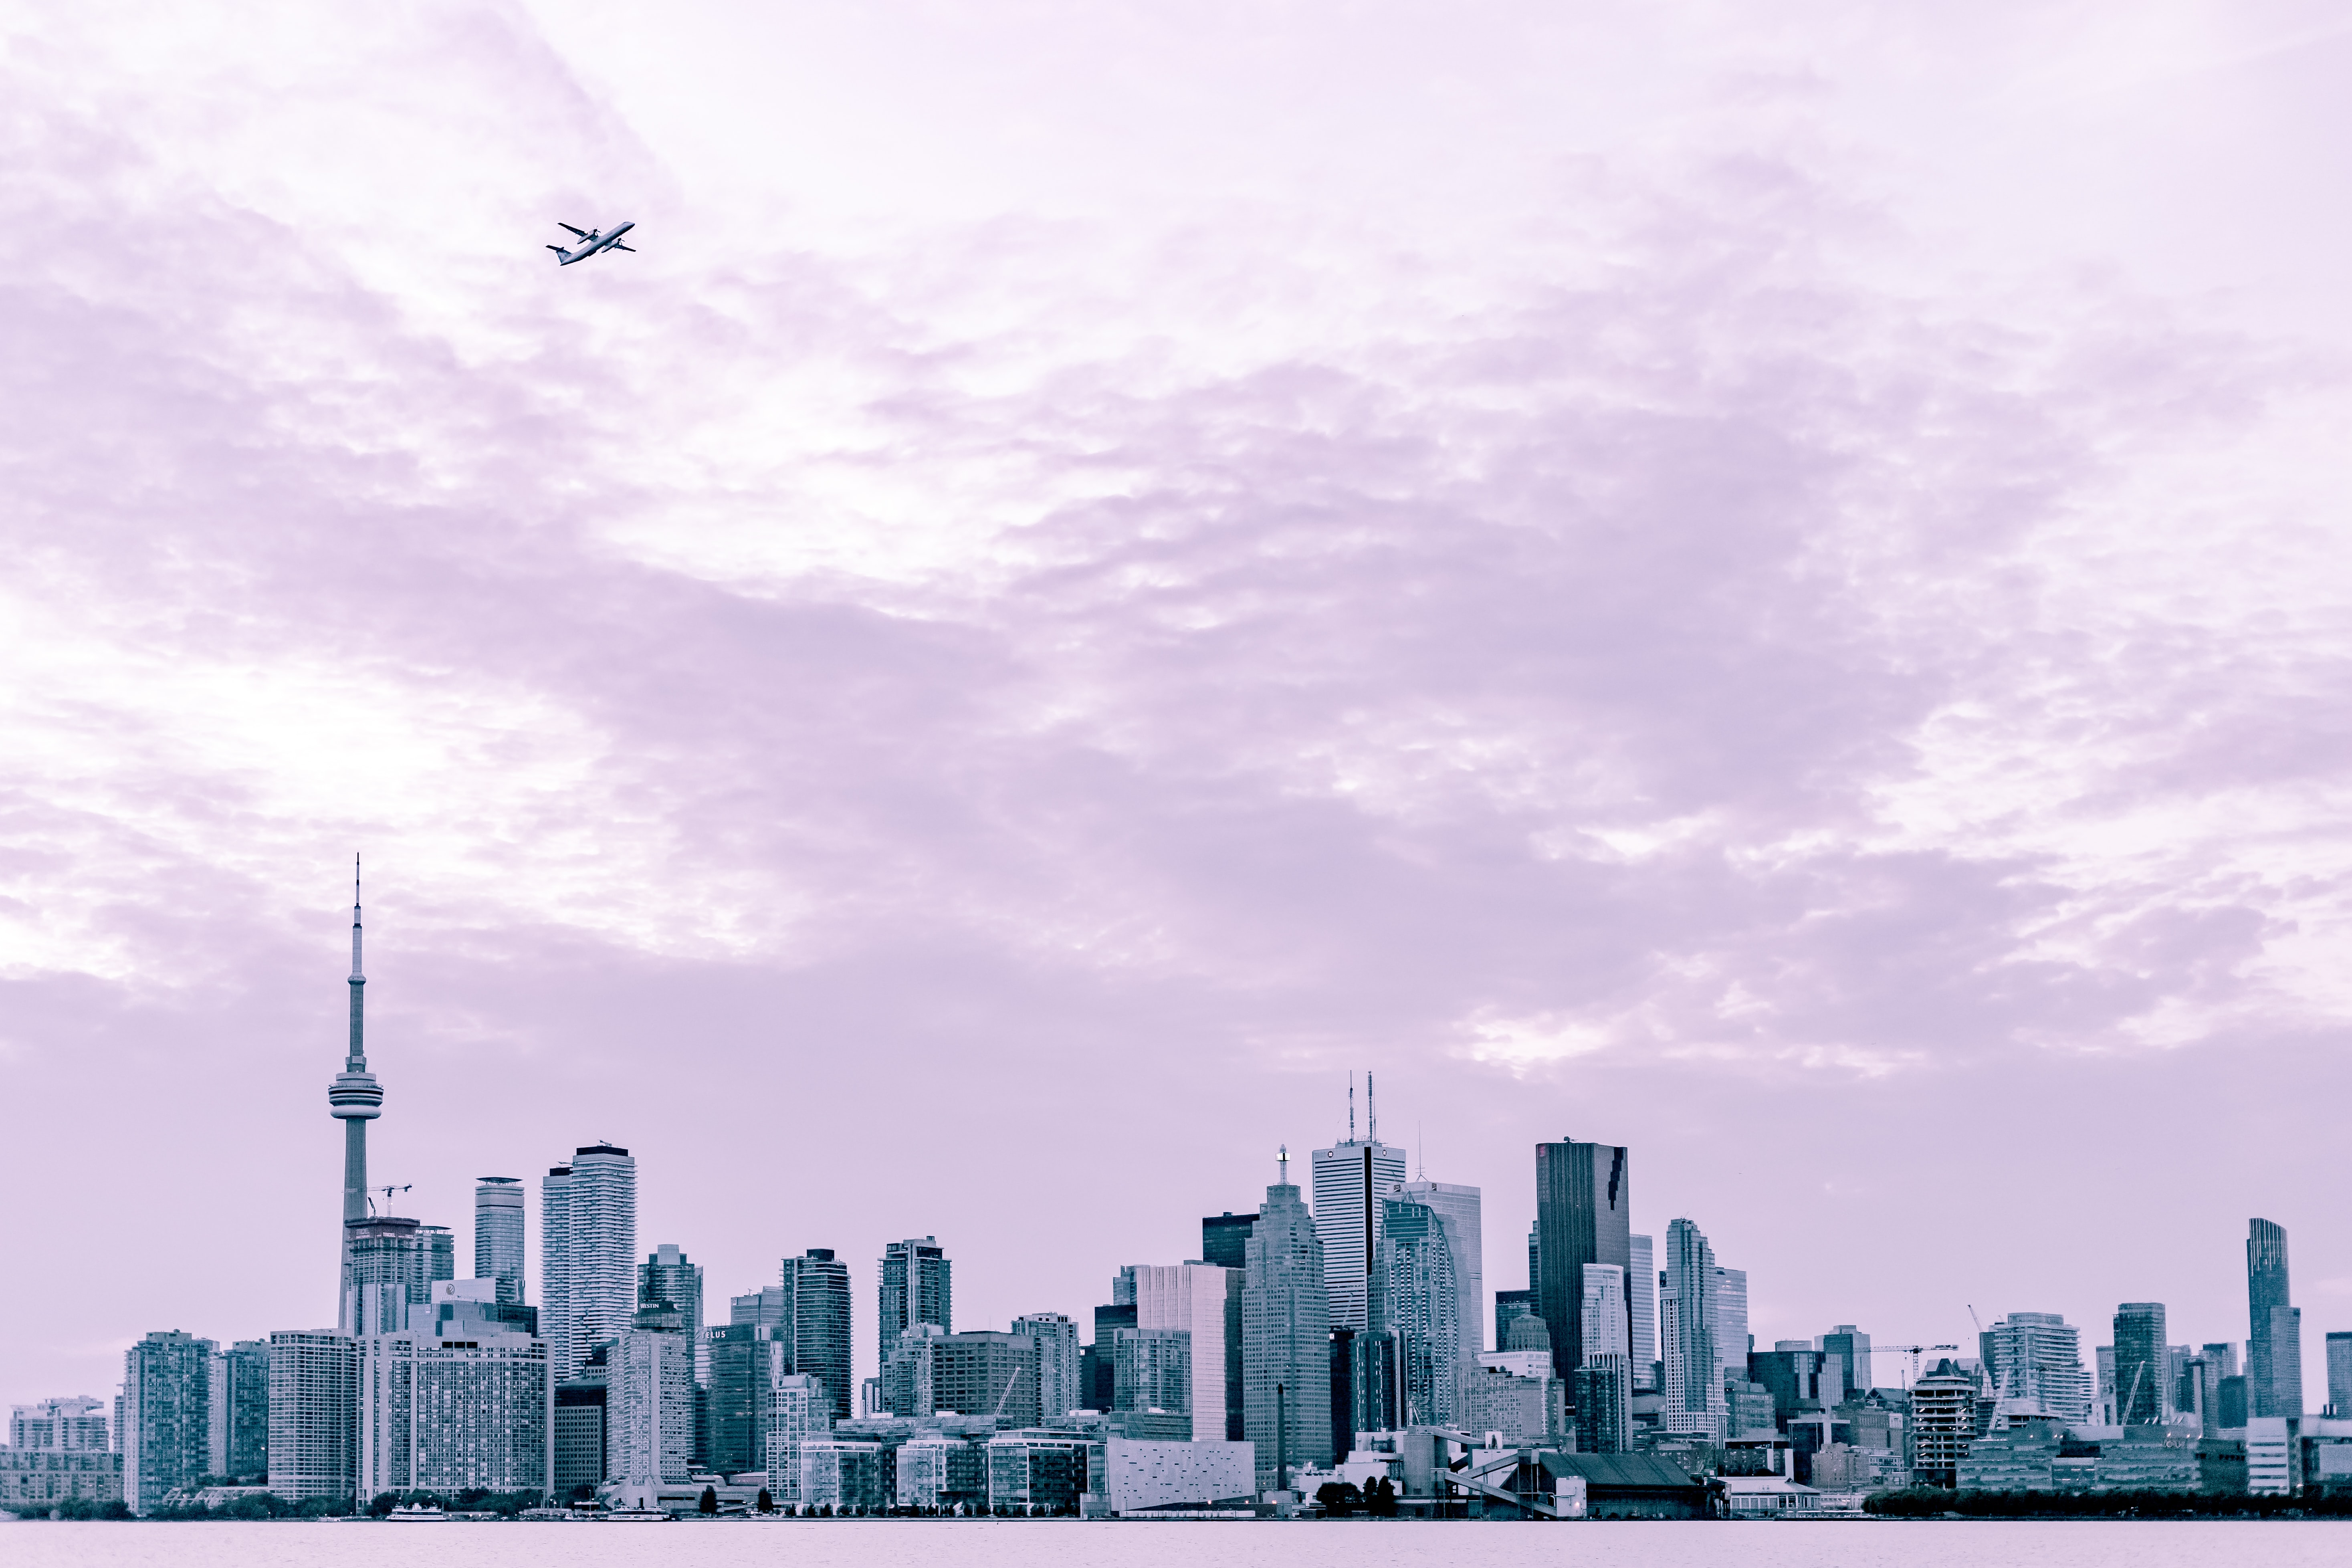 photography of city scape under plane at daytime